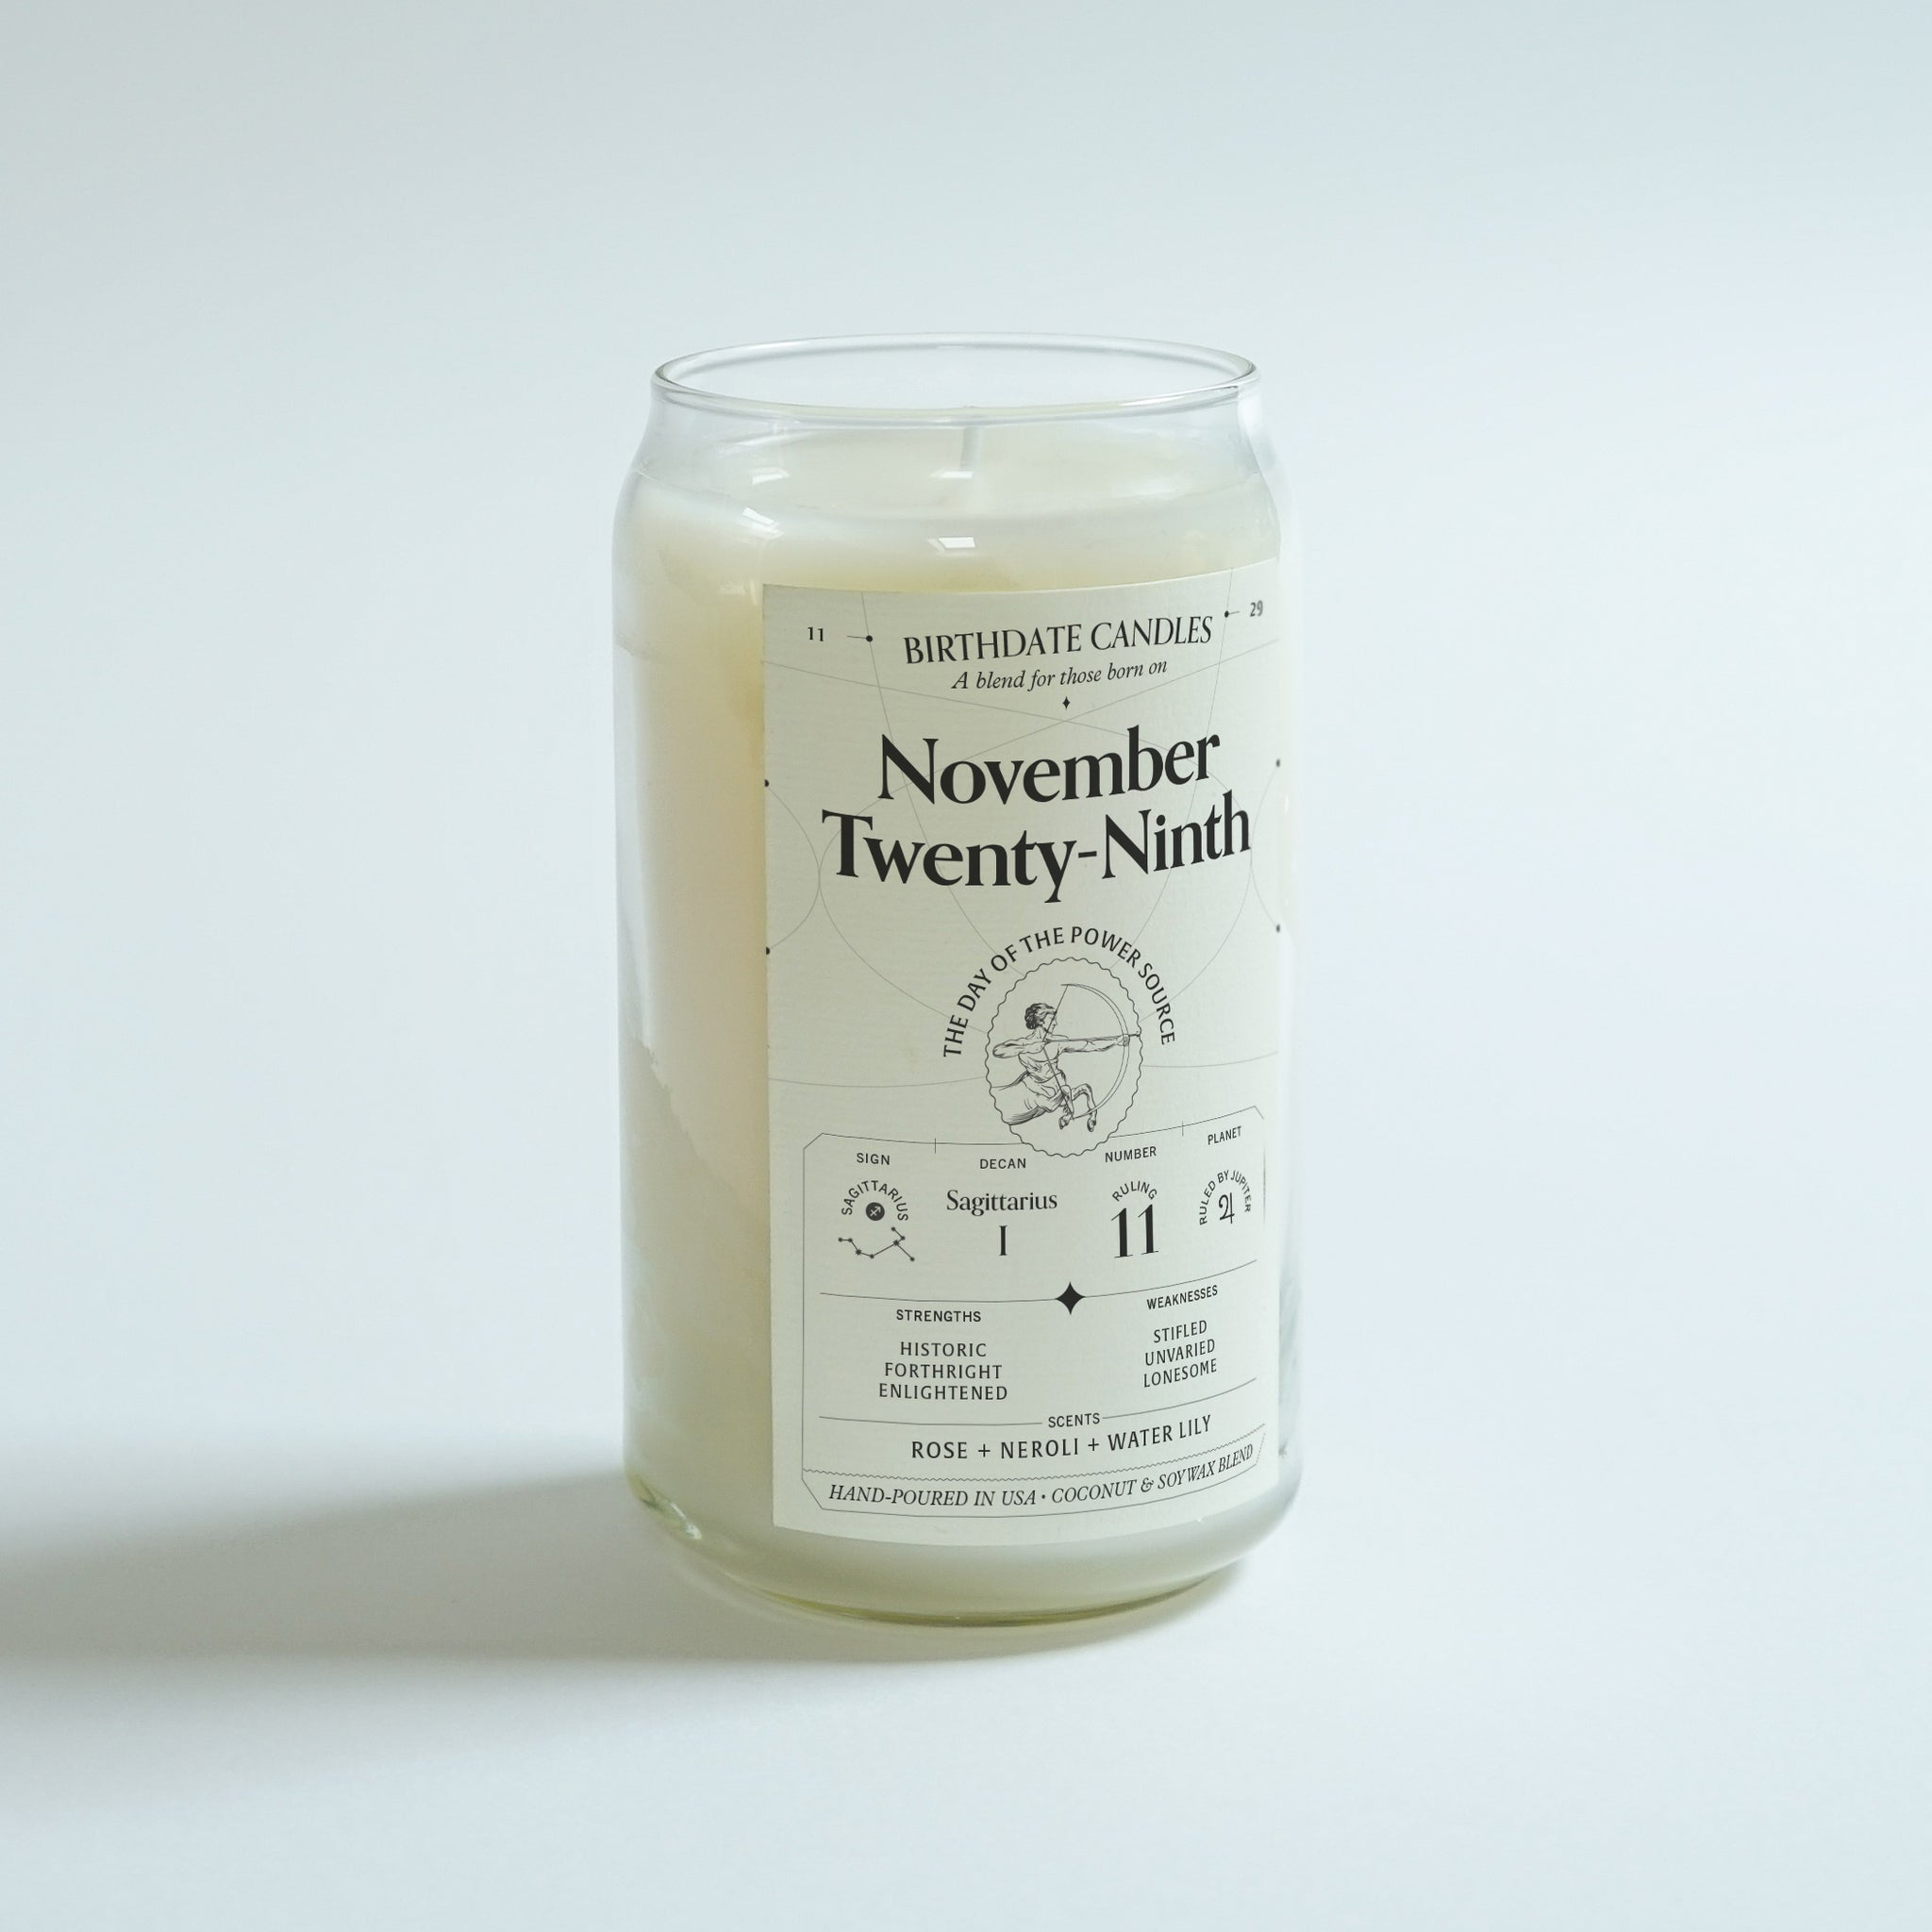 The November Twenty-Ninth Candle